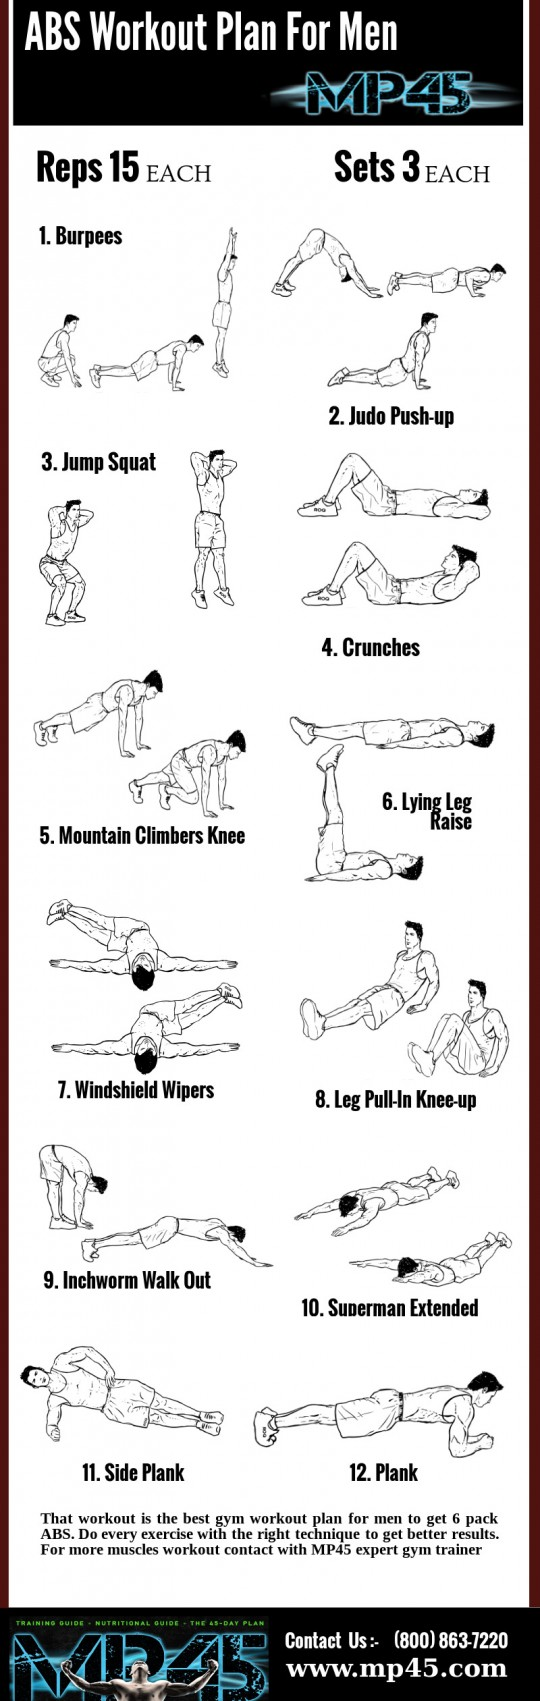 Abs Workouts For Men In Gym